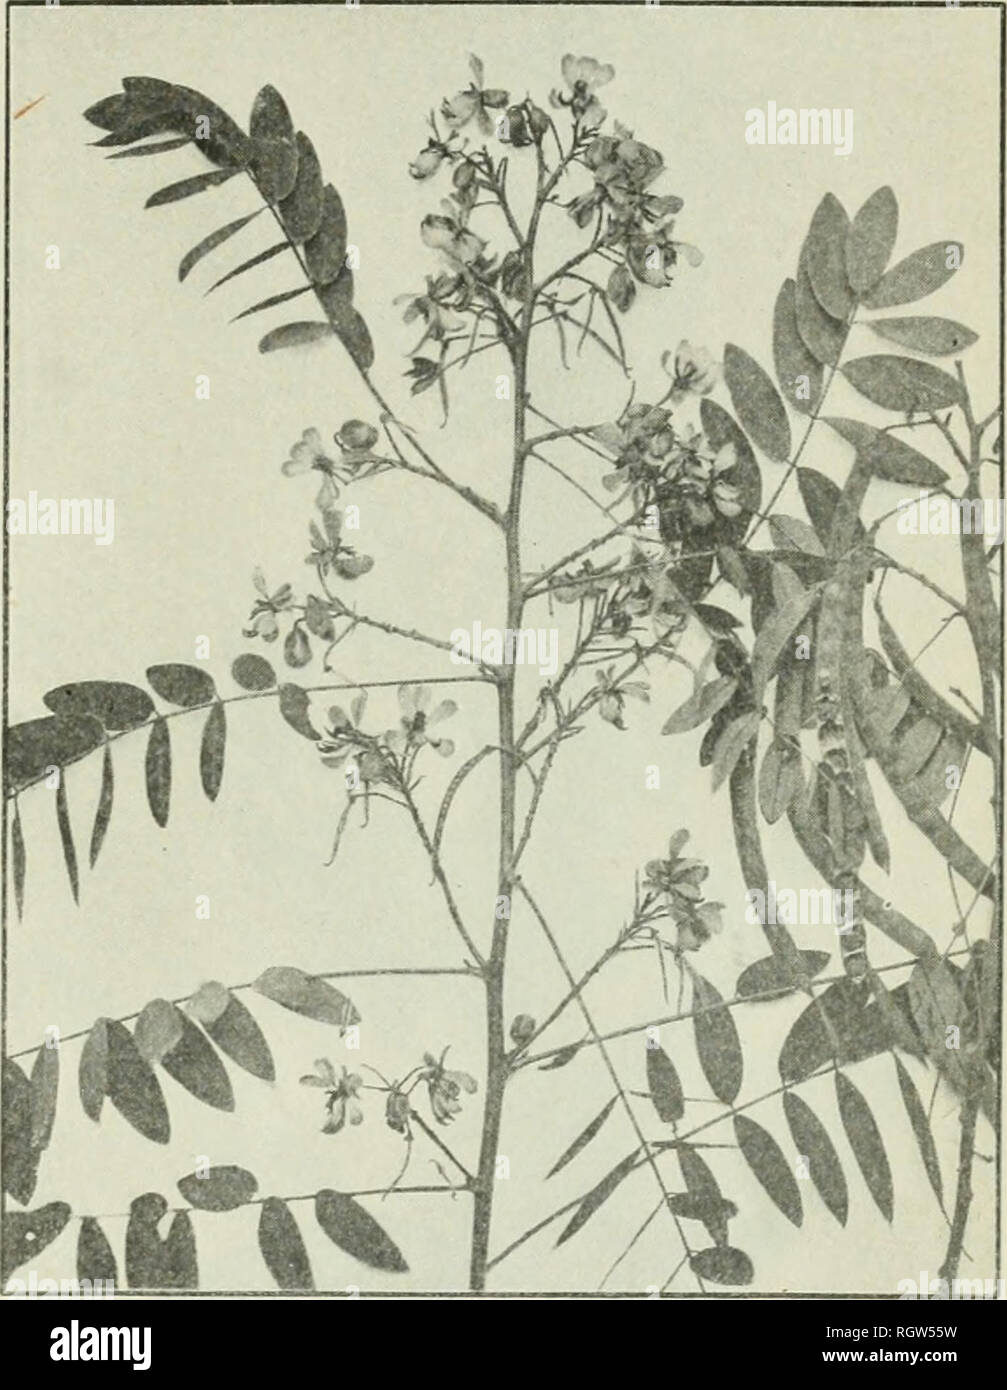 . Bulletin. 1901-13. Agriculture; Agriculture. PLANTS FURNISHING MEDICINAL LEAVES AND HEKI5S. 13 AMERICAN SENXA. Cassia marilandica Jj. Synonijm.—Senna marilandiai Link. Other common names.—Wild senna, locust plant. Habitat and range.—American senna generally frequents wet or swampy soils from New England to North Carolina and westward to Louisiana and Nebraska. Description.—This is a native species, a member of the senna family (Csesalpini- acese), which is closely related to the pea family. It is a perennial herb, its round grooved stems reaching about 4 to 6 feet in height. The loaves, whic - Stock Image